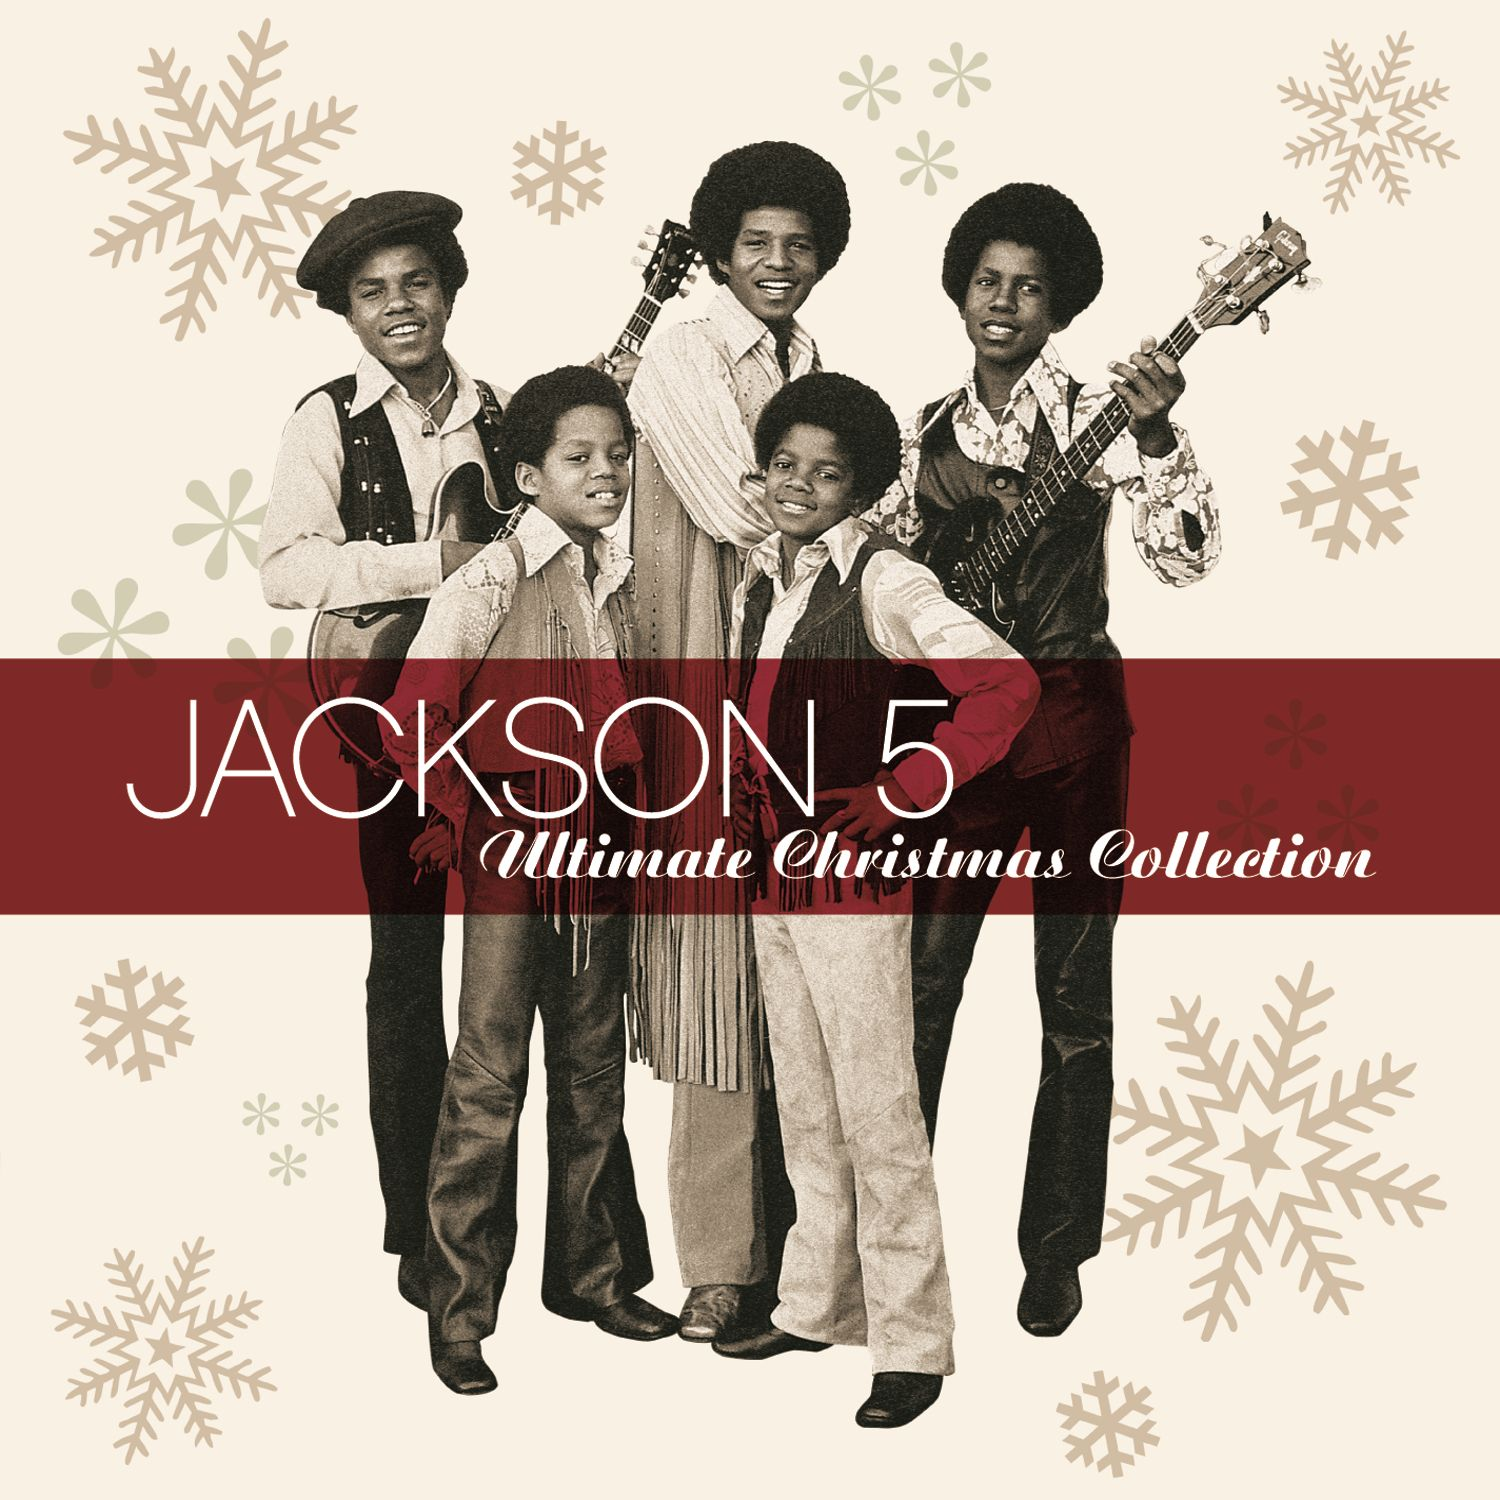 Ultimate Christmas Collection by The Jackson 5 in the Microsoft Store